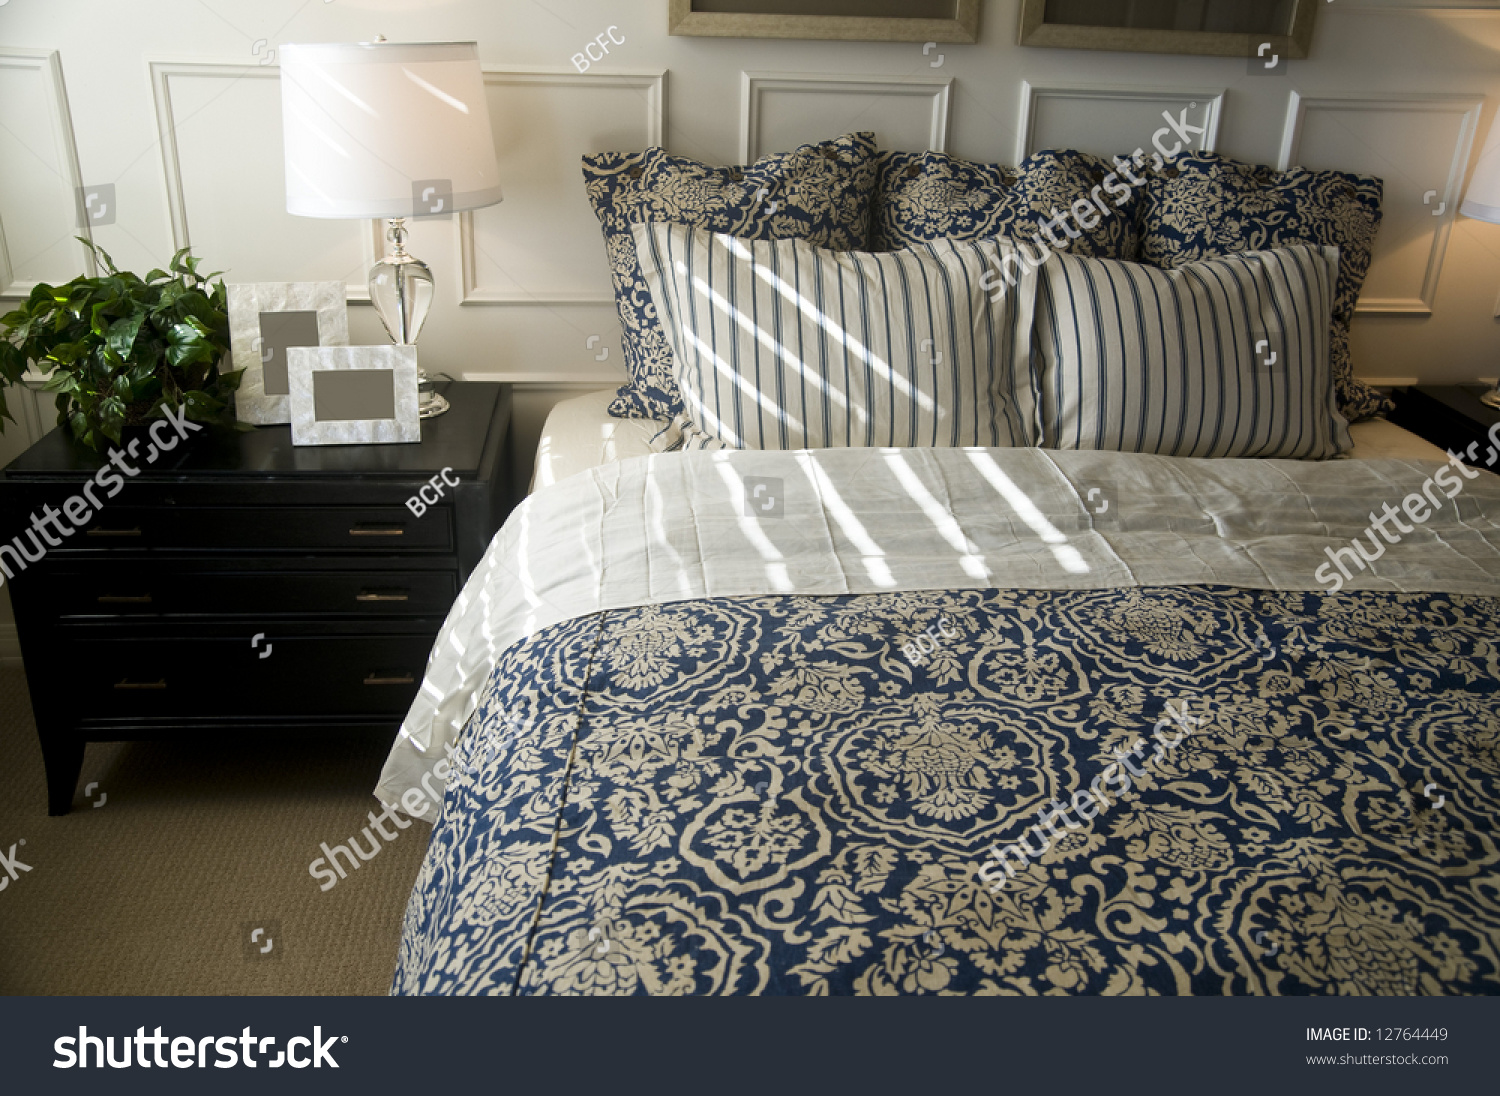 Beautiful bedroom interior design stock photo 12764449 for Beautiful bedroom interior